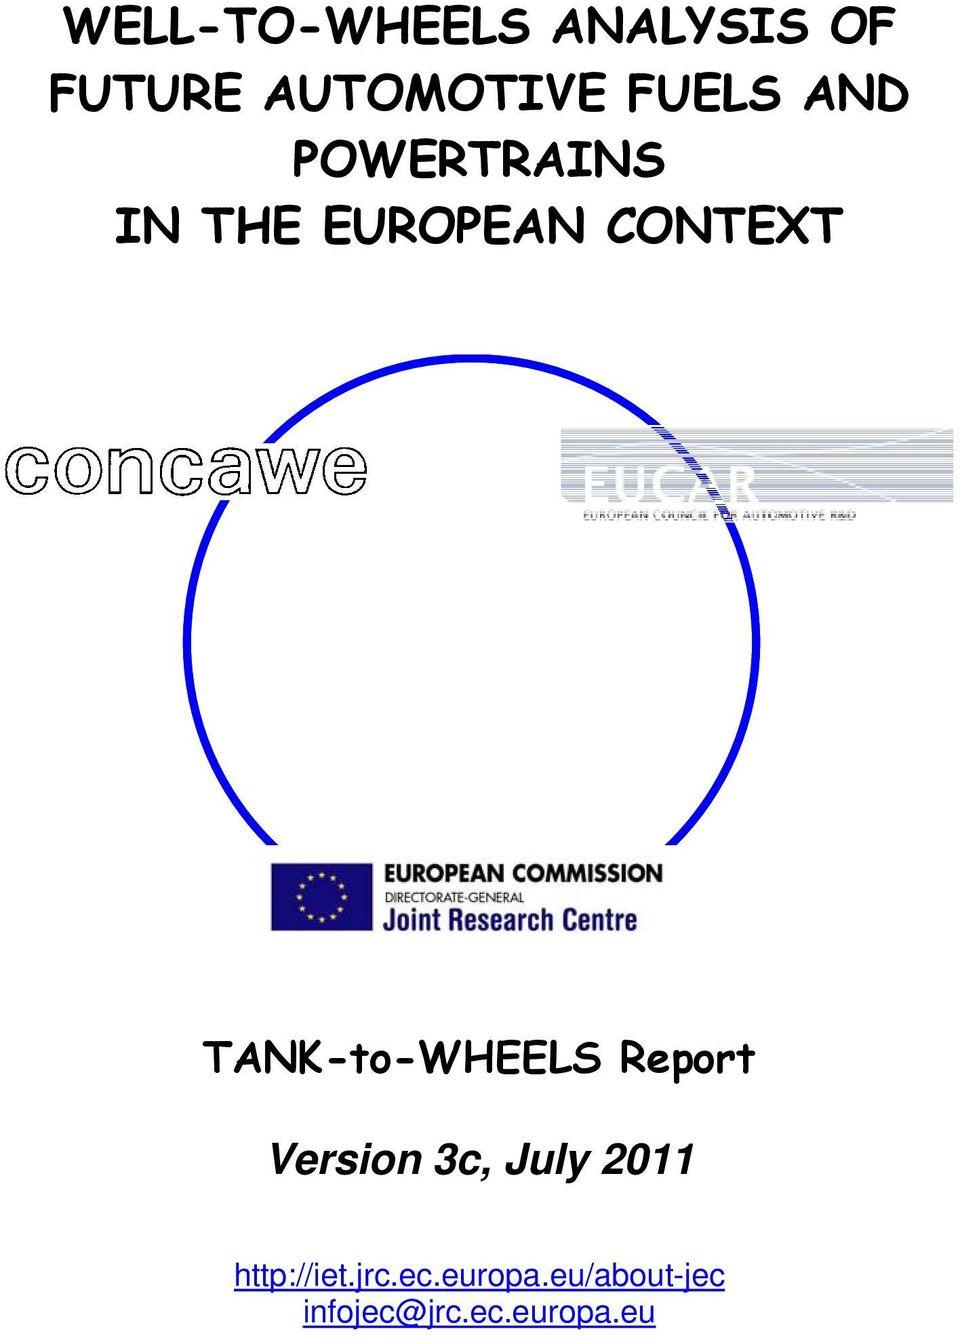 TANK-to-WHEELS Report Version 3c, July 2011